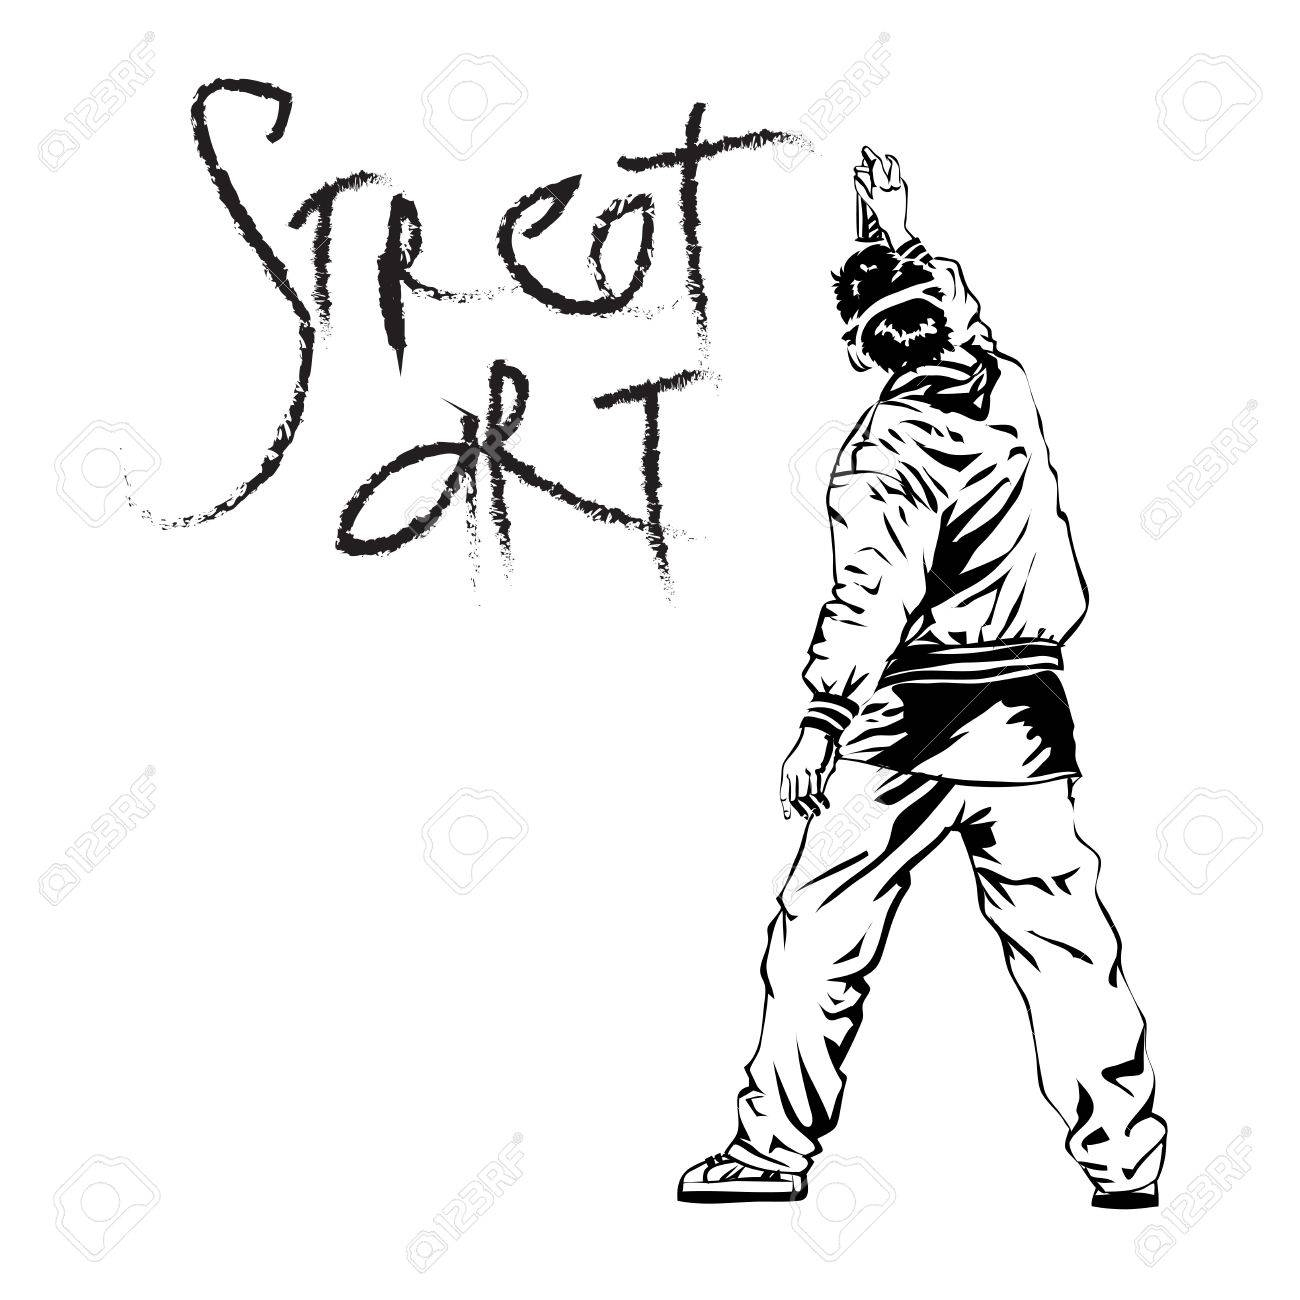 1300x1300 Graffiti Guy Drawing How To Draw A Graffiti Character By Wizard